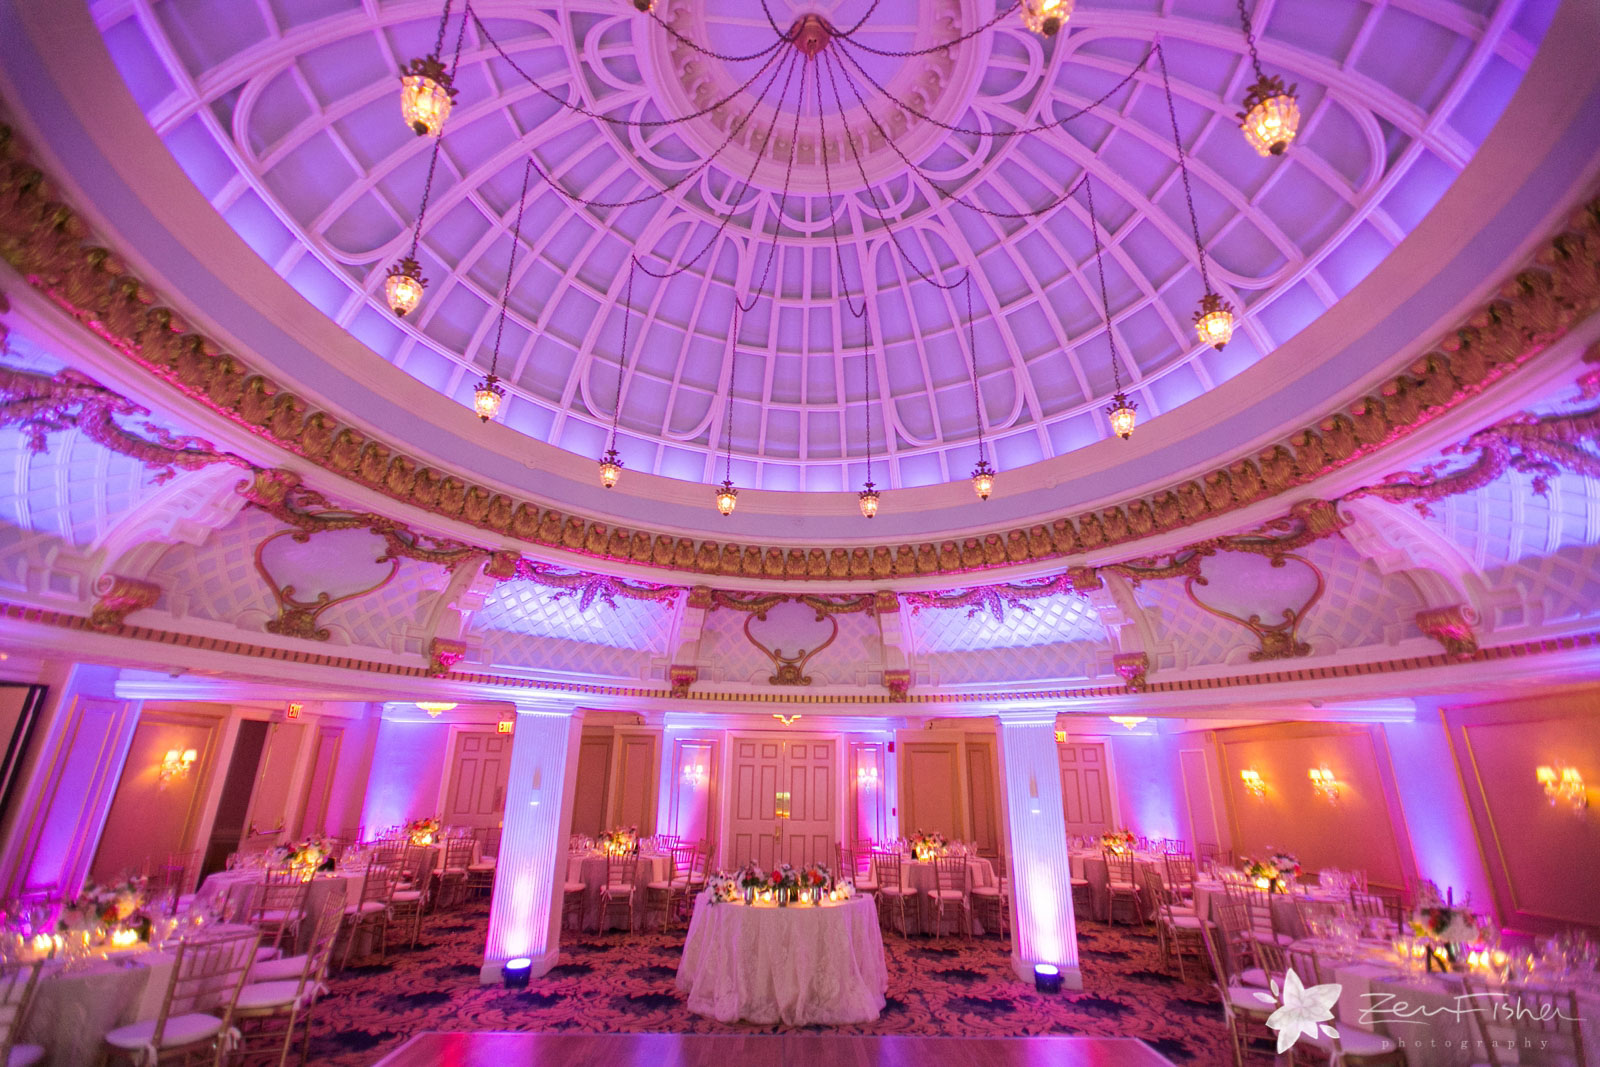 Wide shot of reception hall at Lenox with large dome, magenta lighting, and elegant architecture.